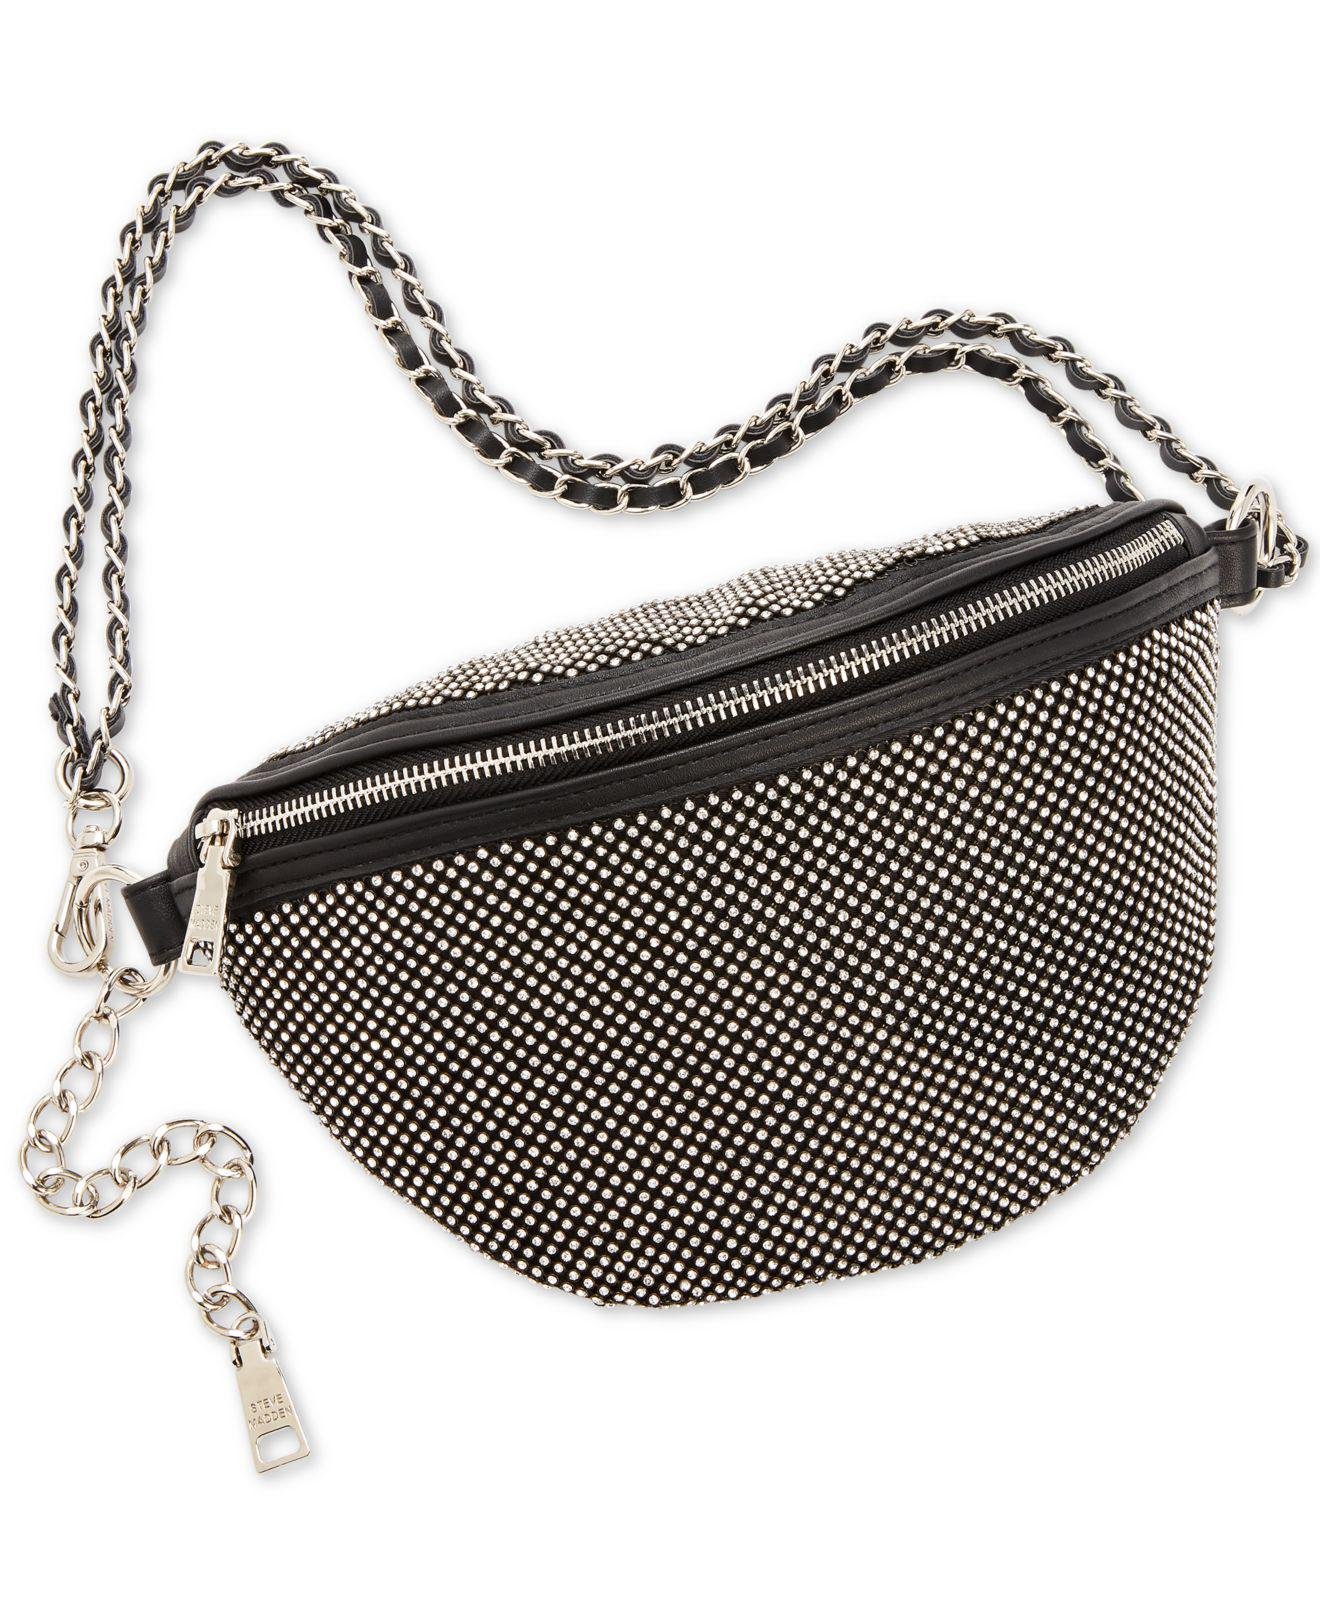 fb20b8af1527 Lyst - Steve Madden Bling Convertible Belt Bag in Black